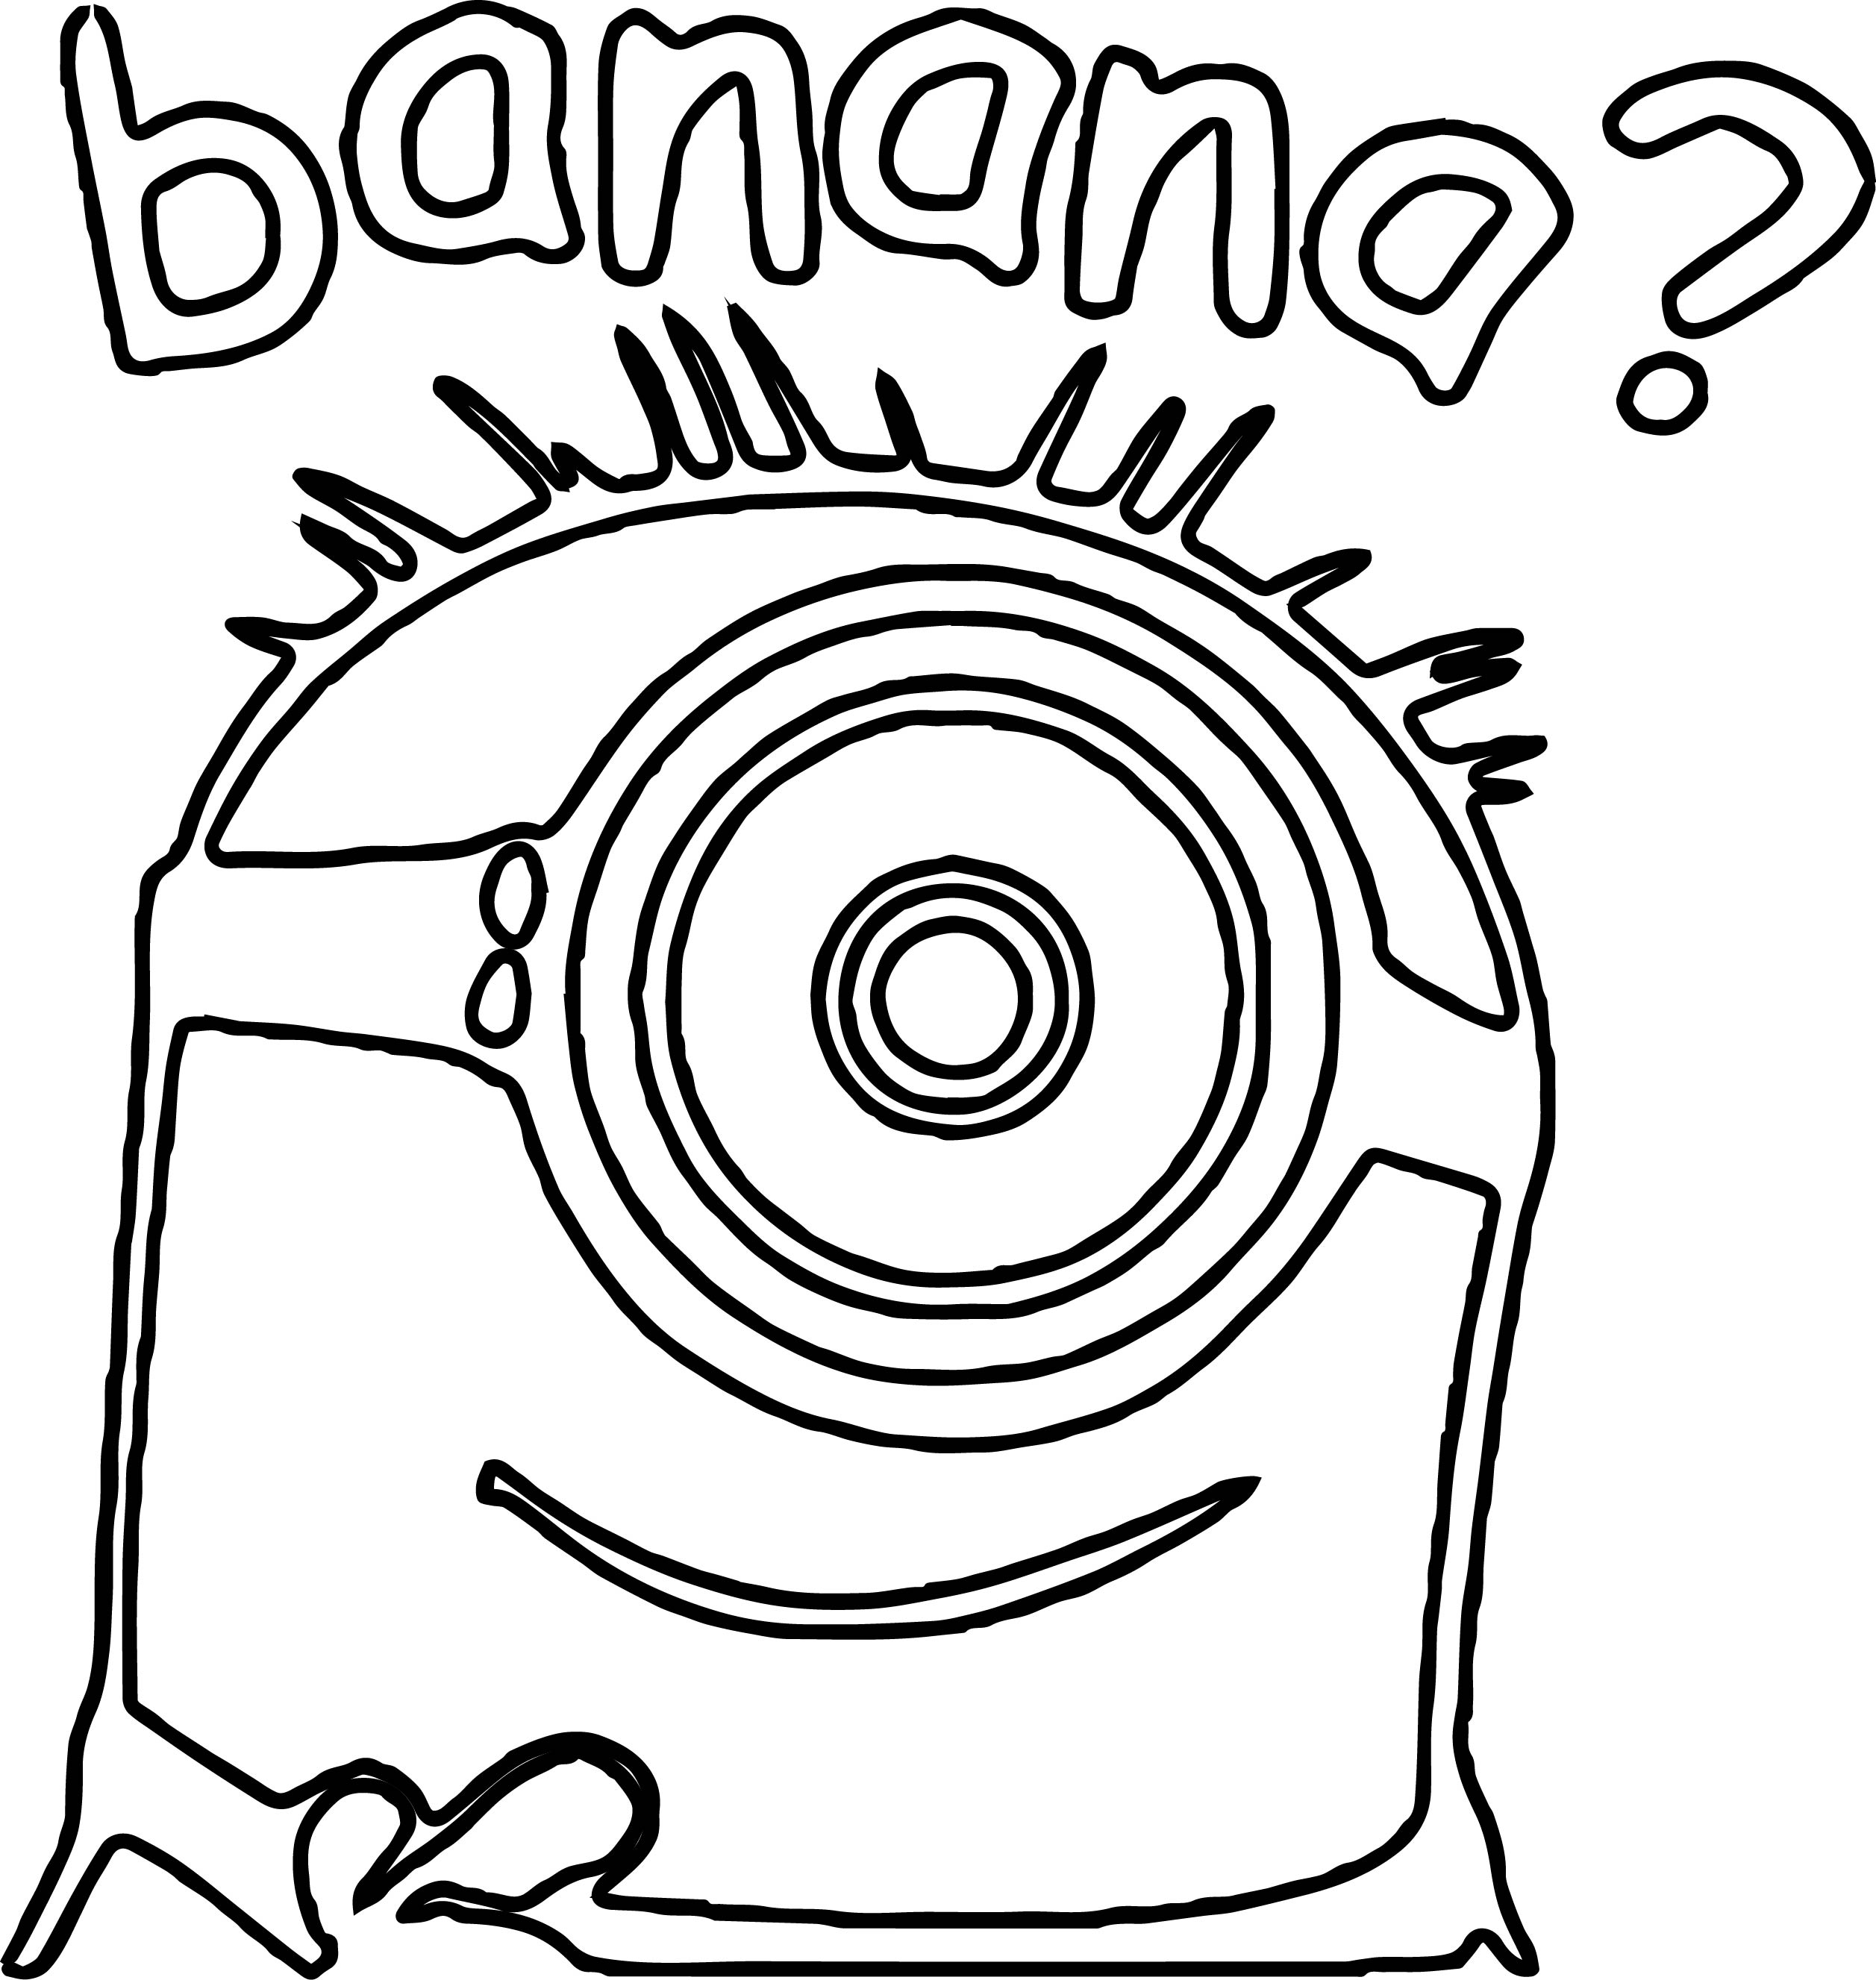 minions coloring pages banana split - photo#4